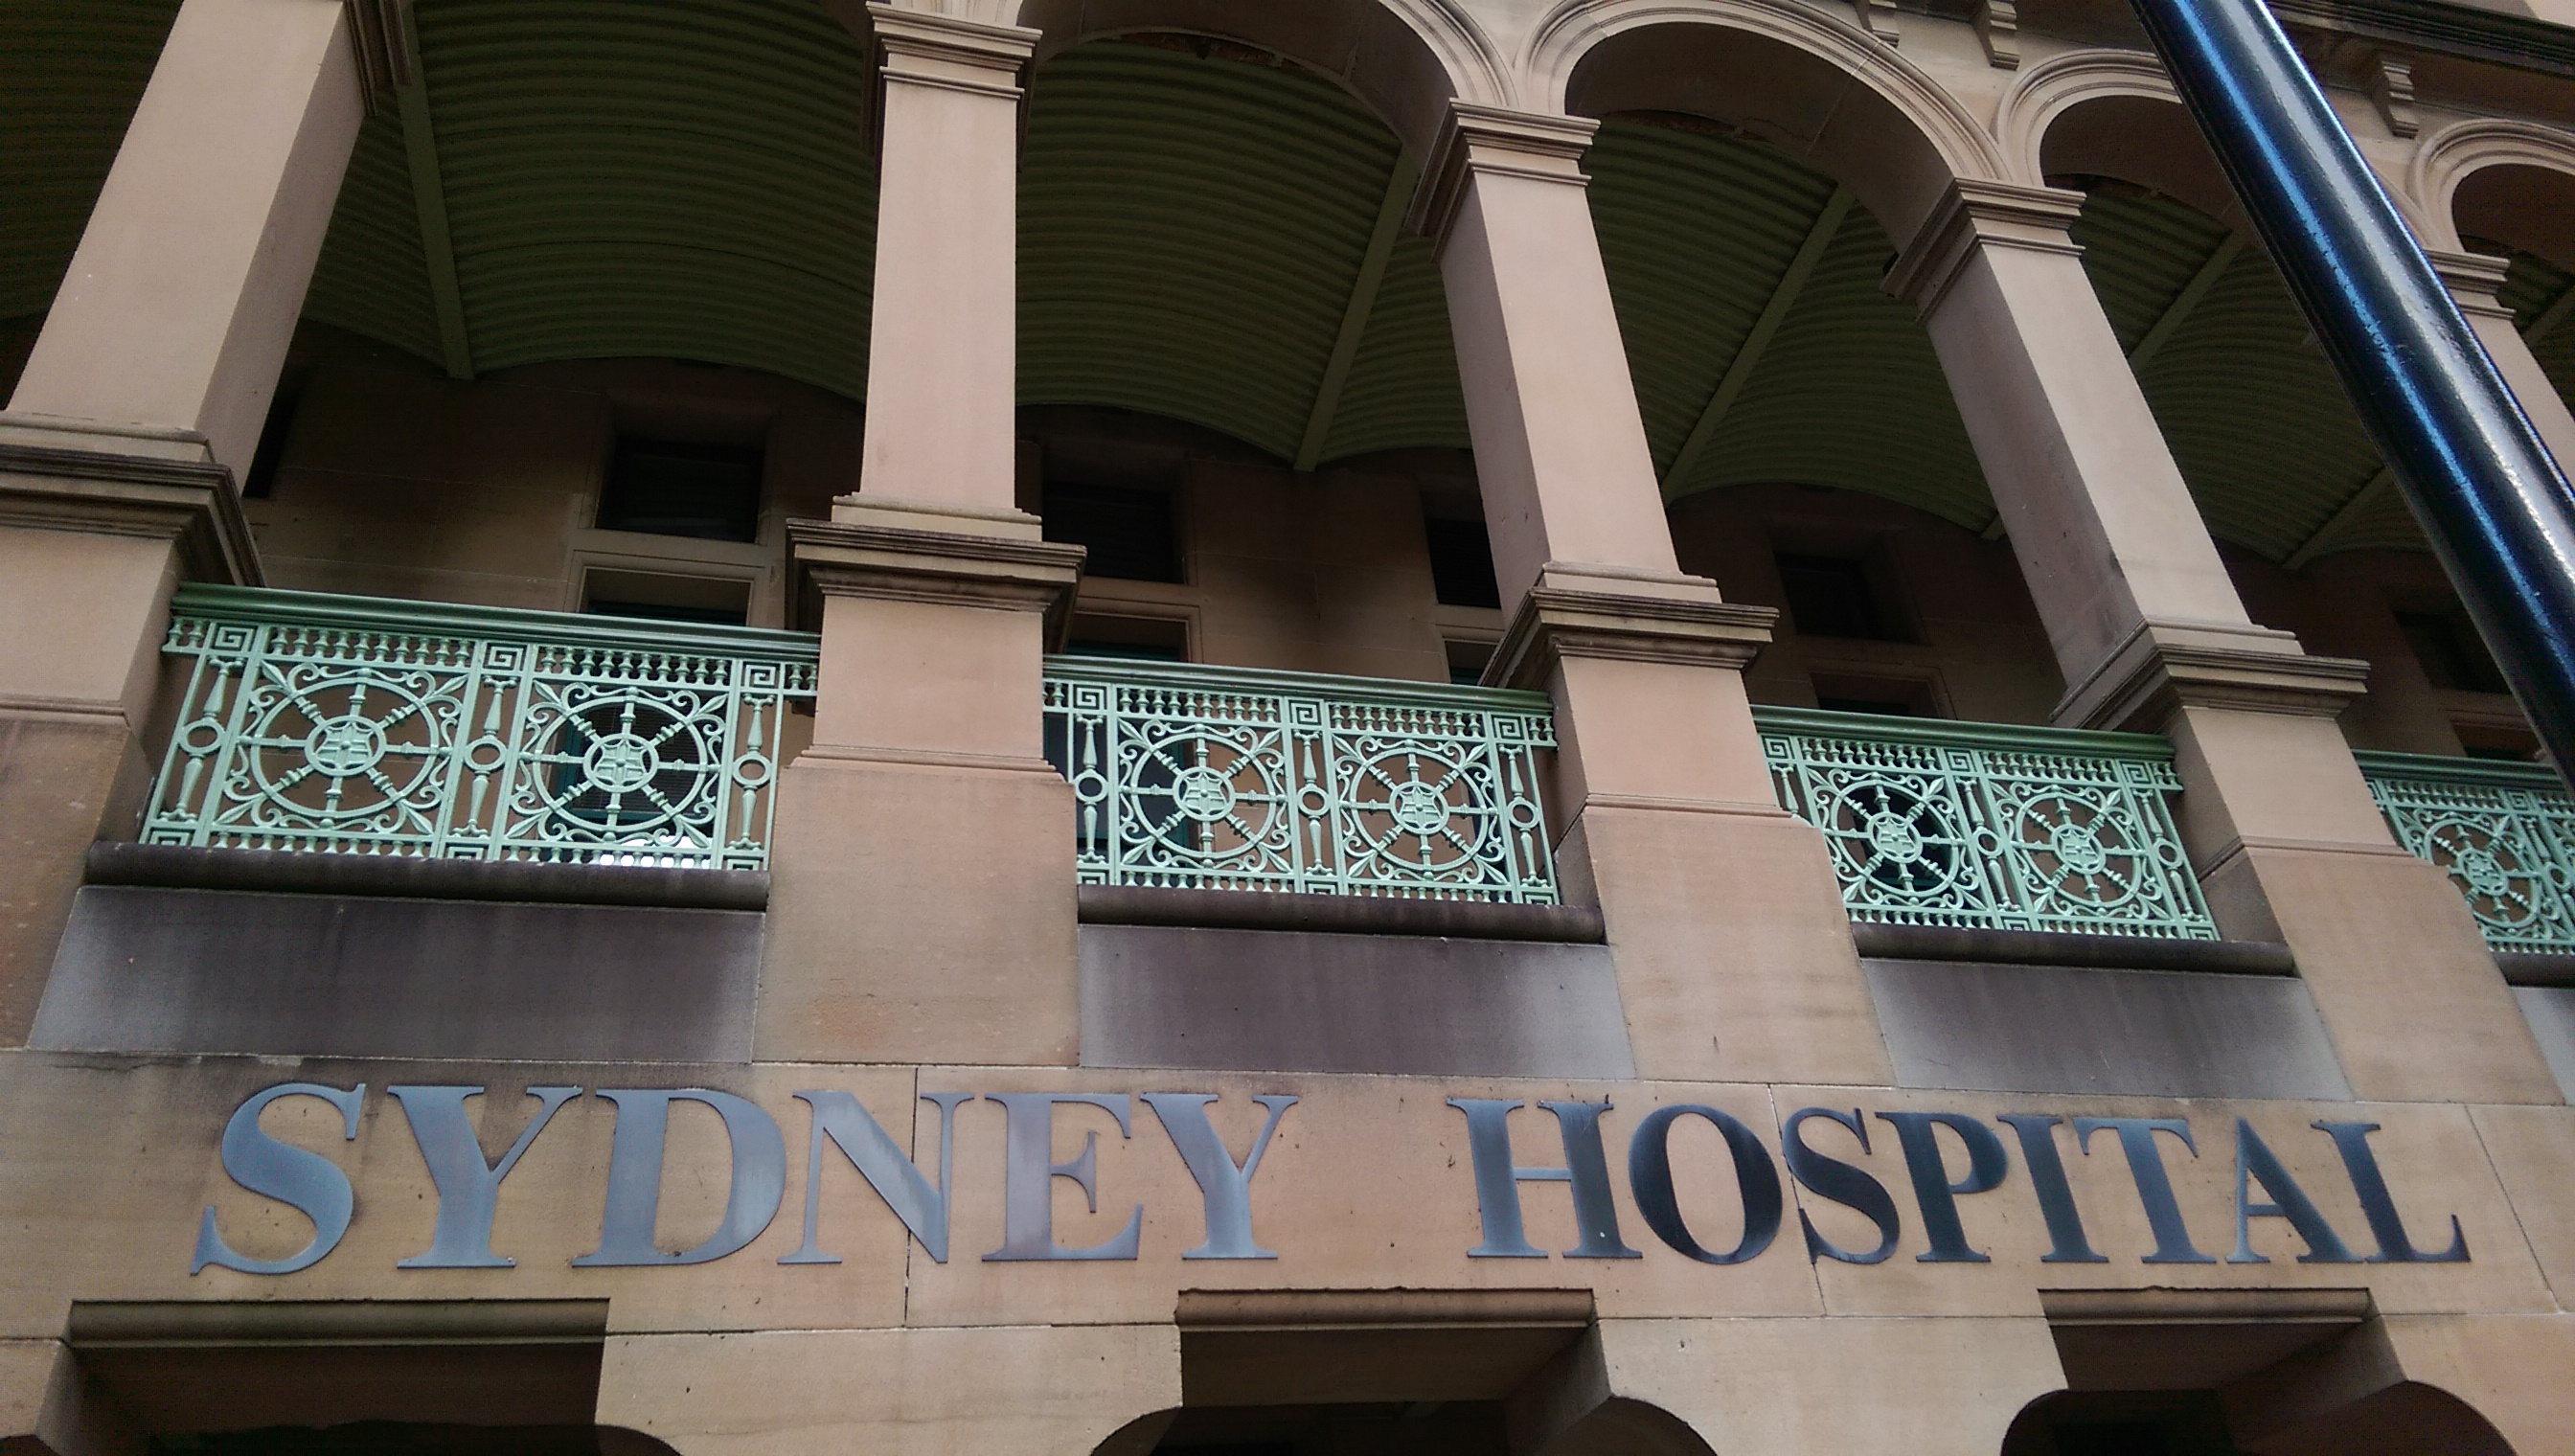 SYDNEY HOSPITAL , CLEMENTINA STARTED TRAINEE SHIP NURSING IN 1903 AGED 24